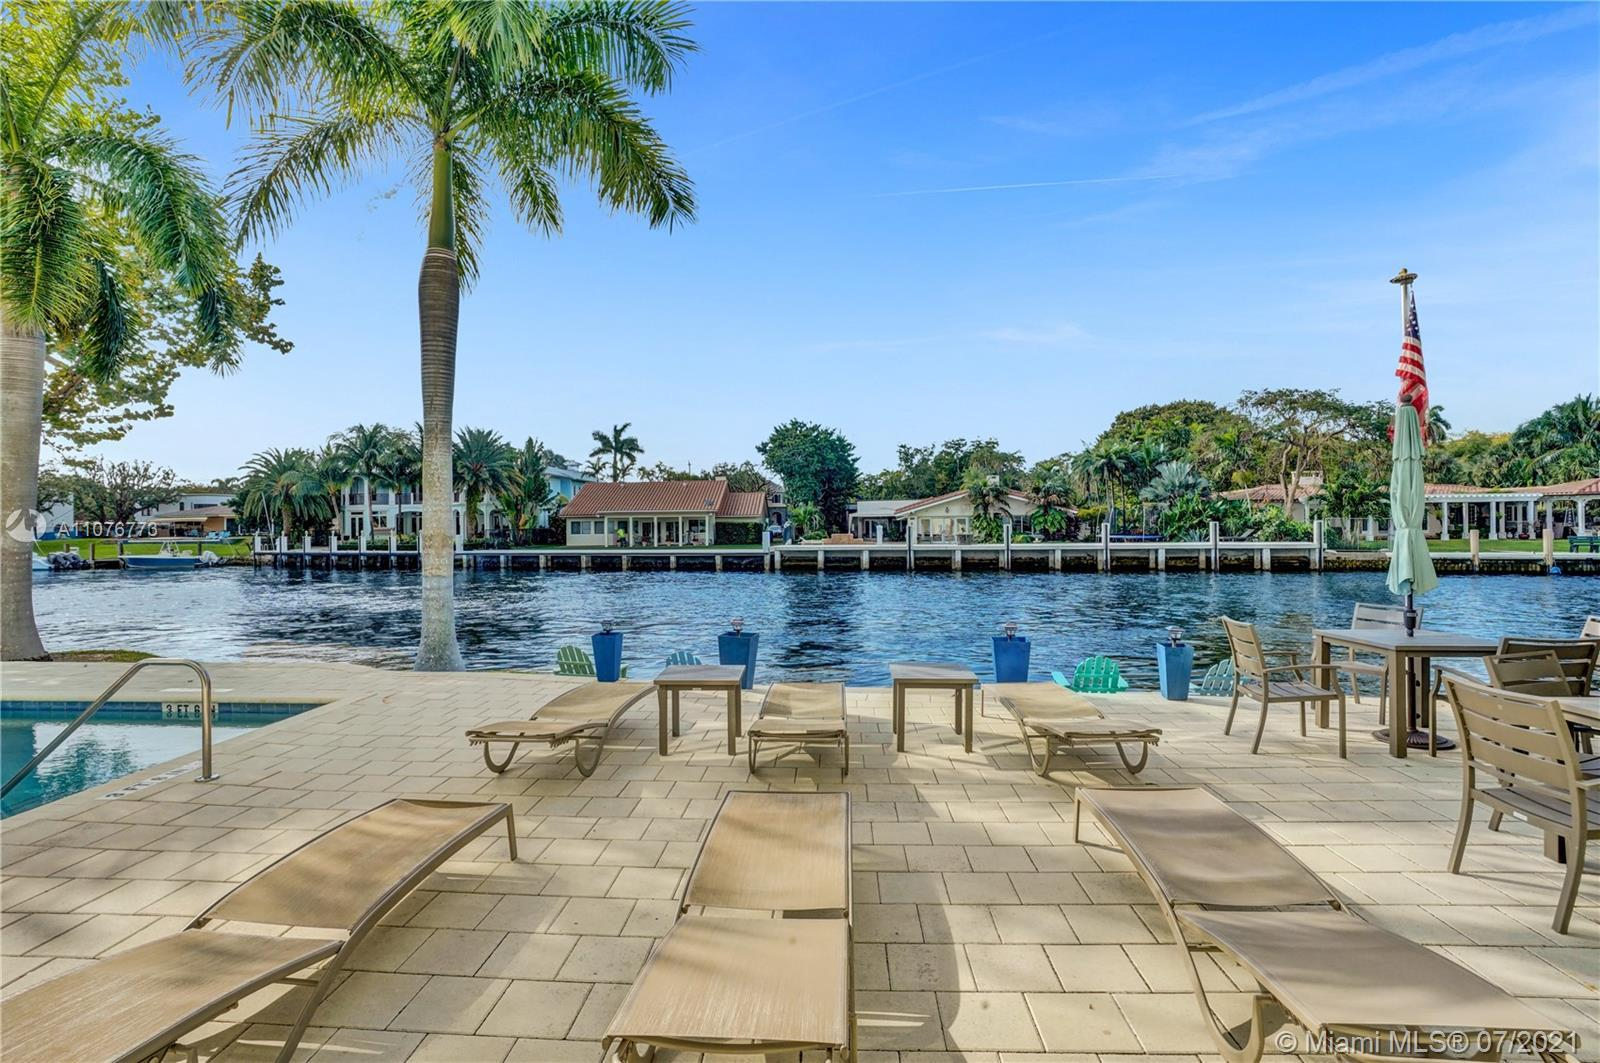 Experience the South Florida lifestyle at its best, in this home located directly on the New River o